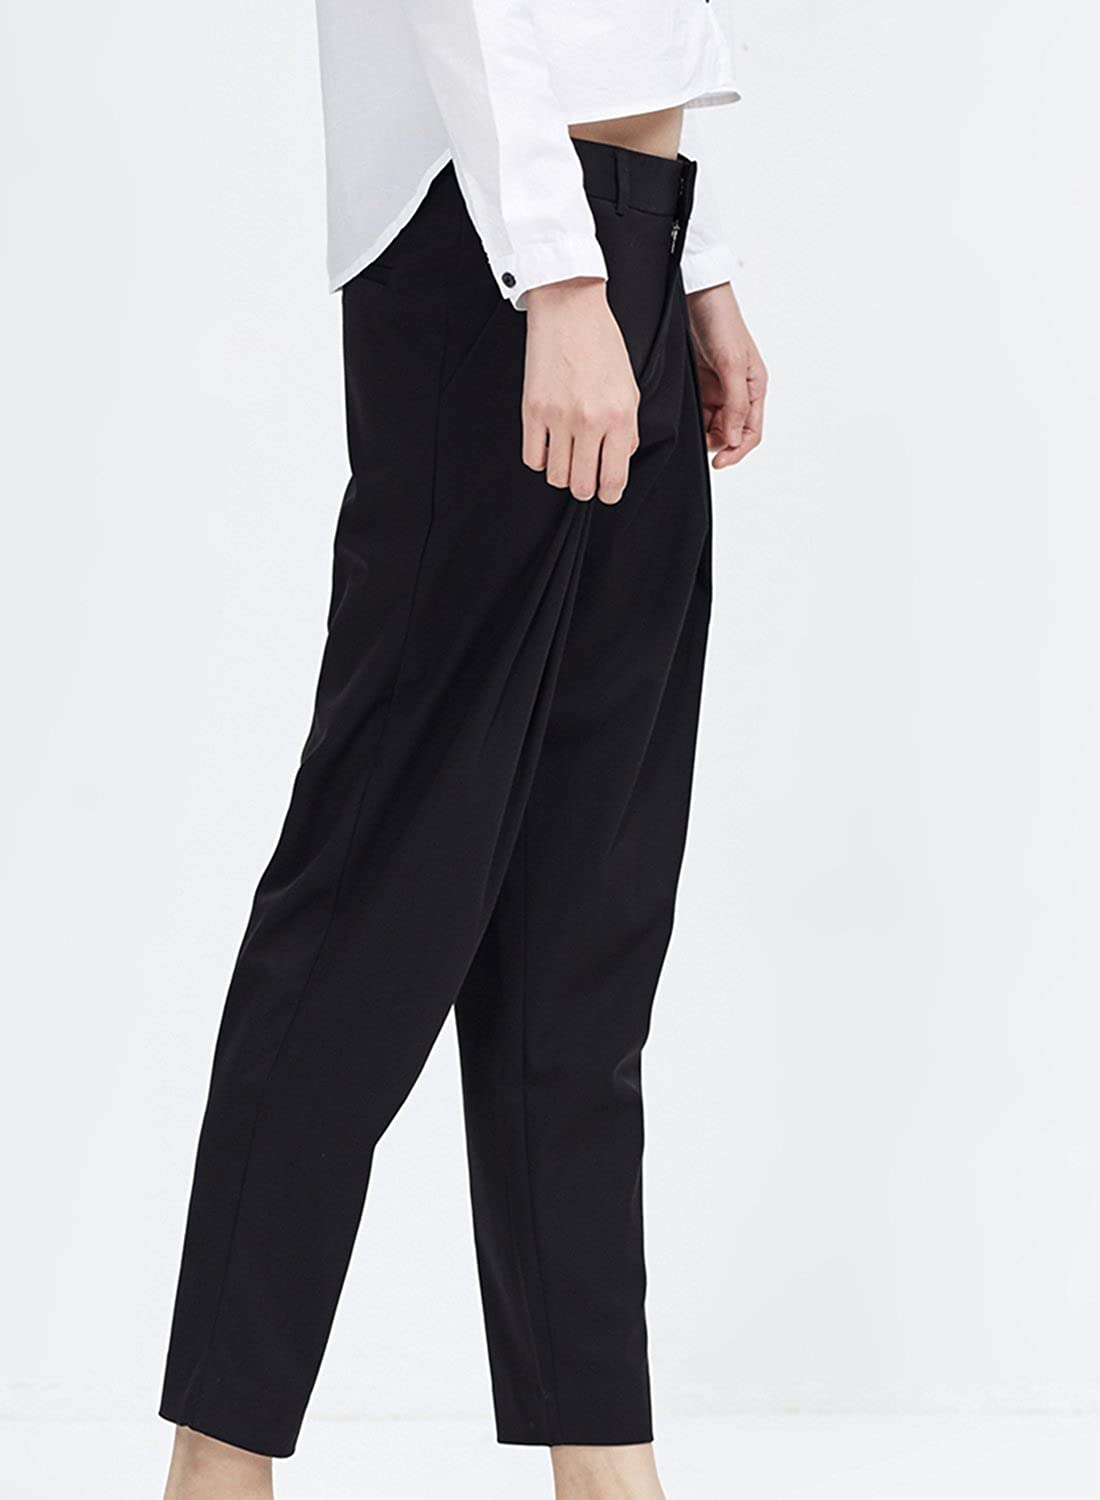 Meters/bonwe Women's Casual Solid Color Pleated Ninth Pants